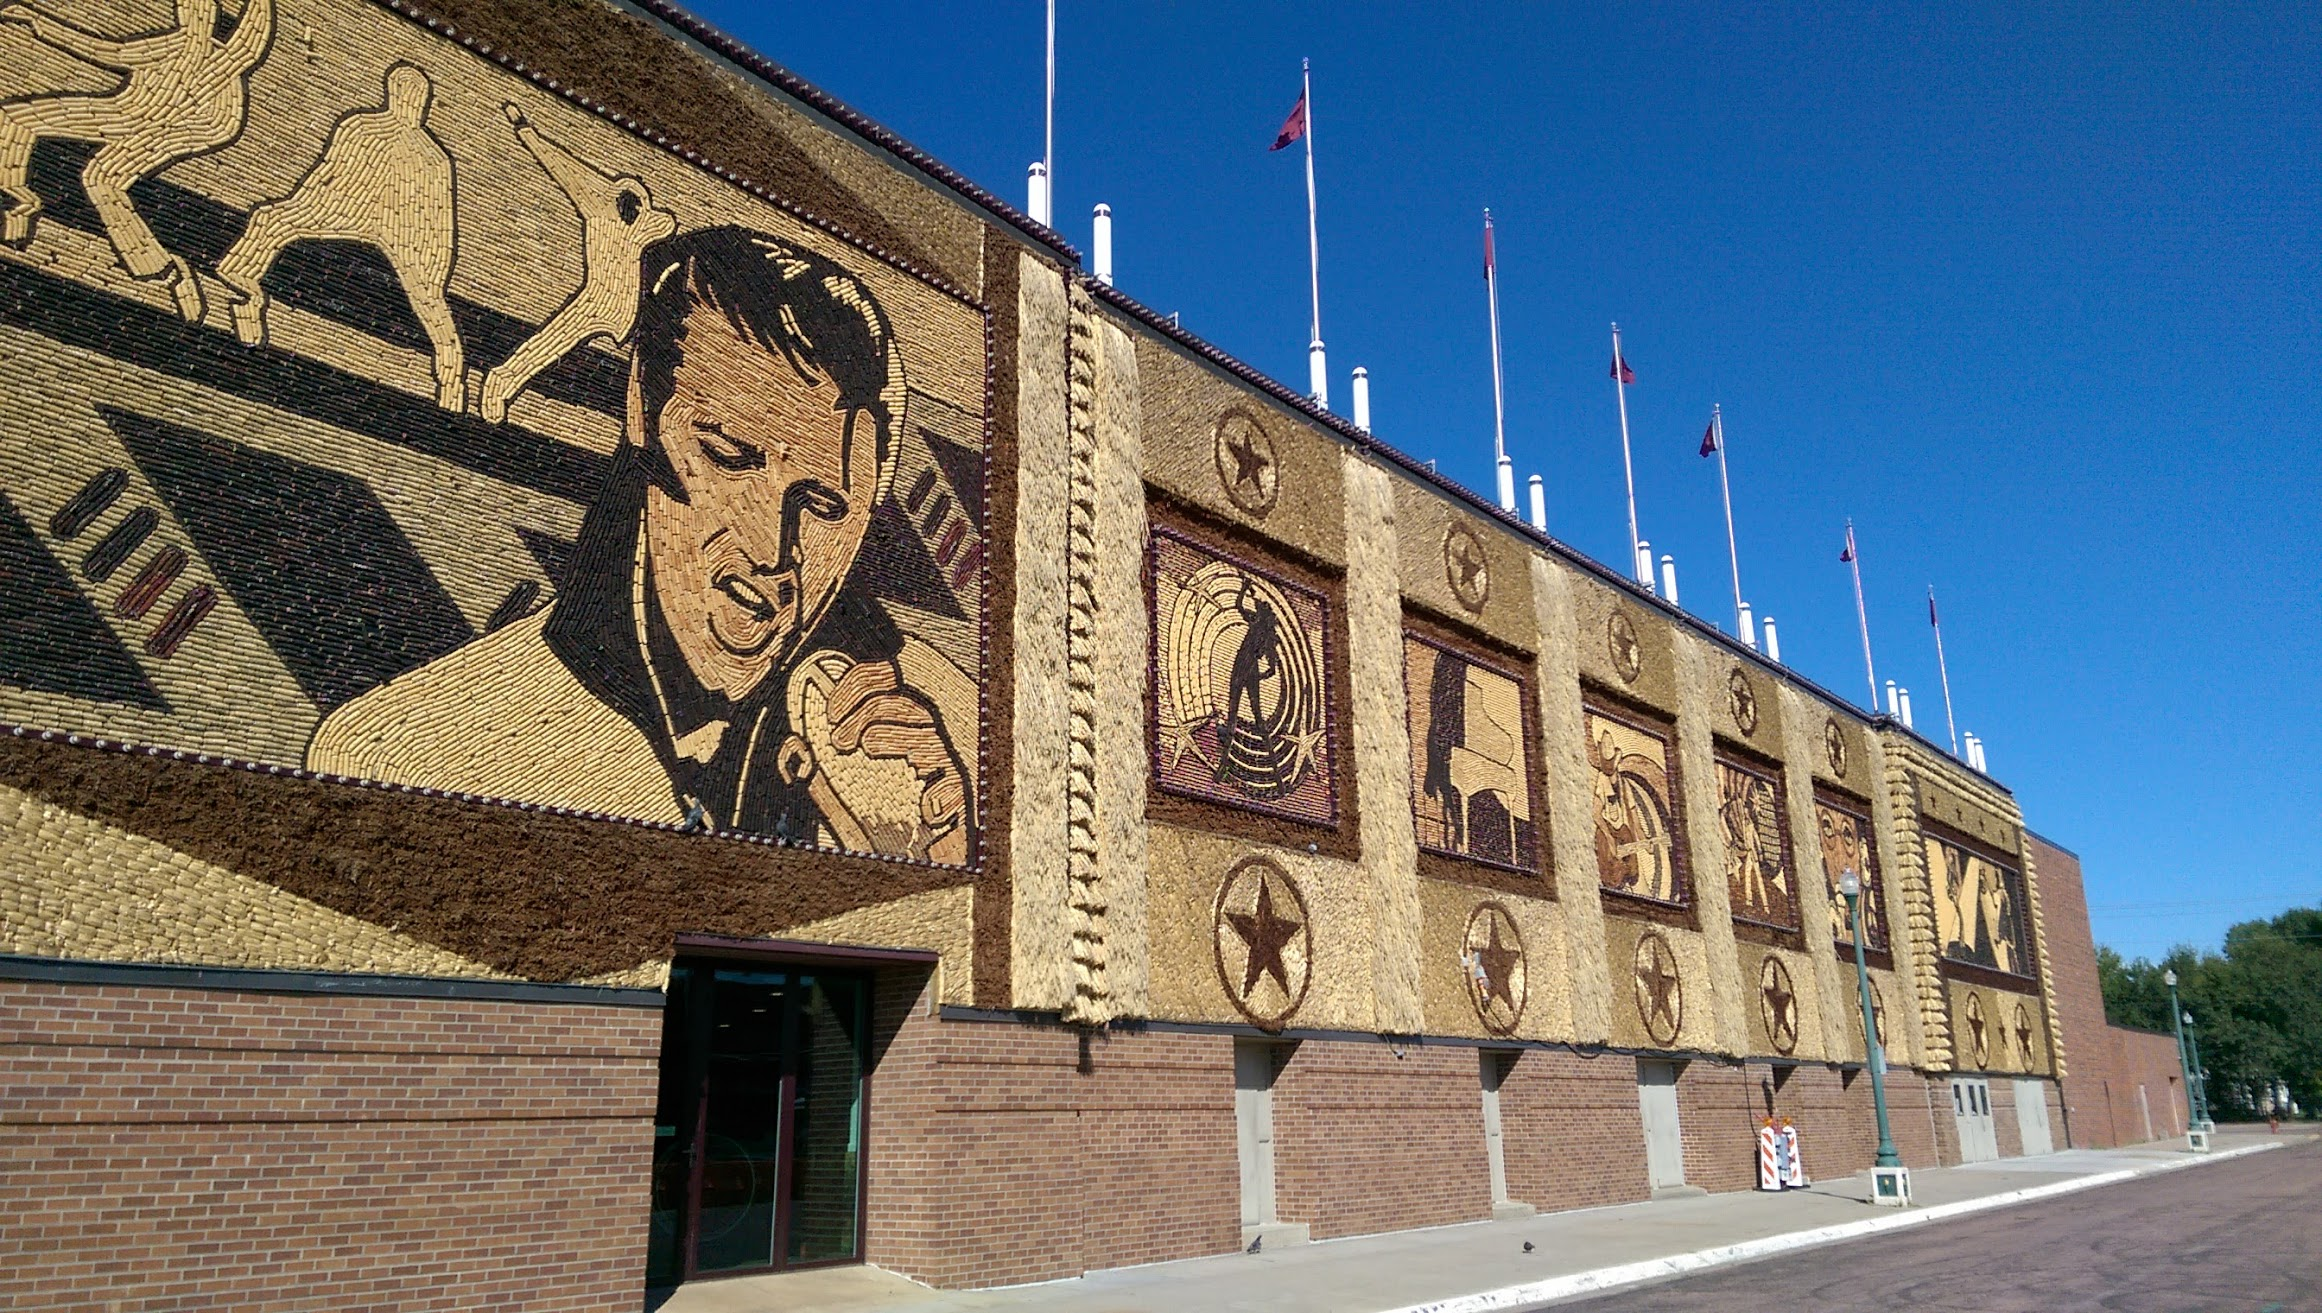 Corn Palace Rock of Ages